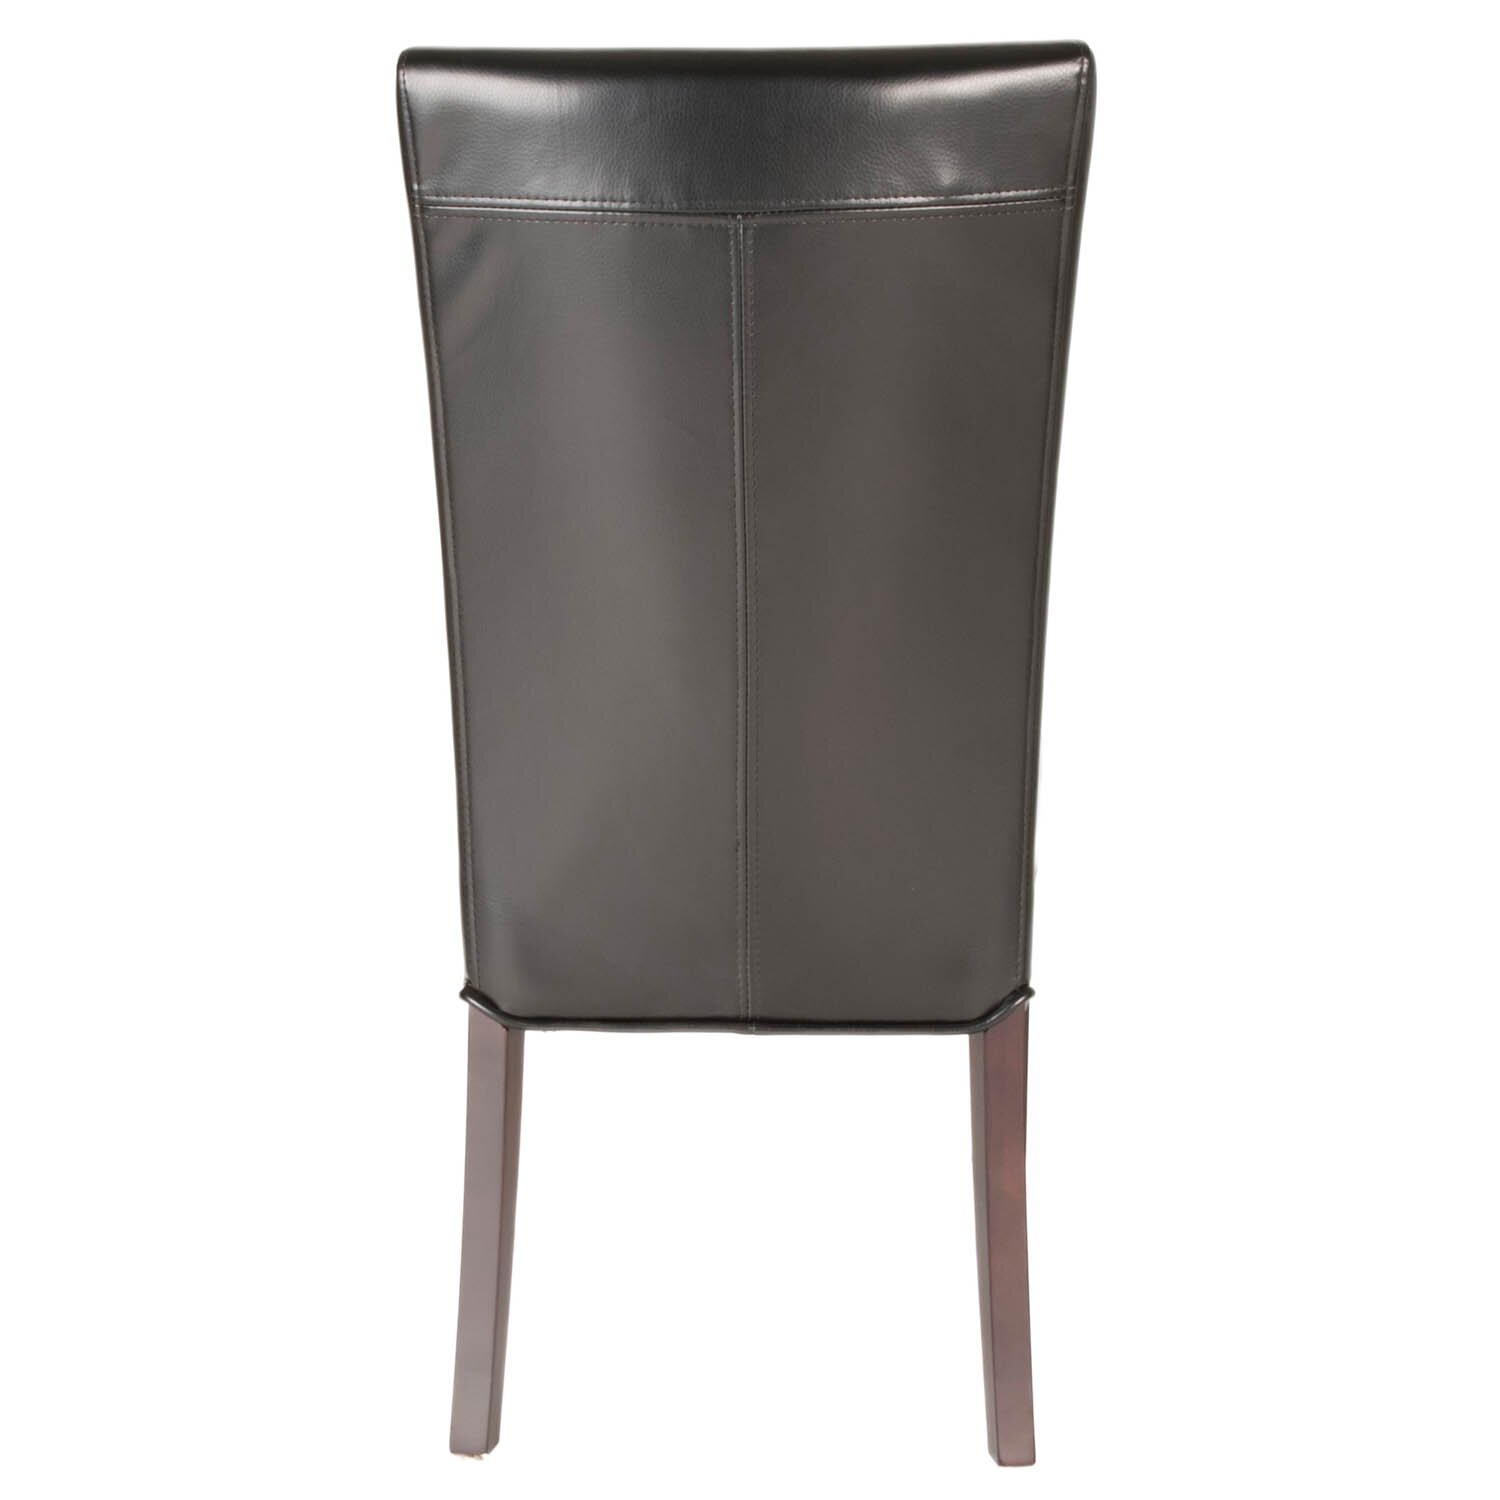 Orient express furniture london parsons chair reviews for Furniture express